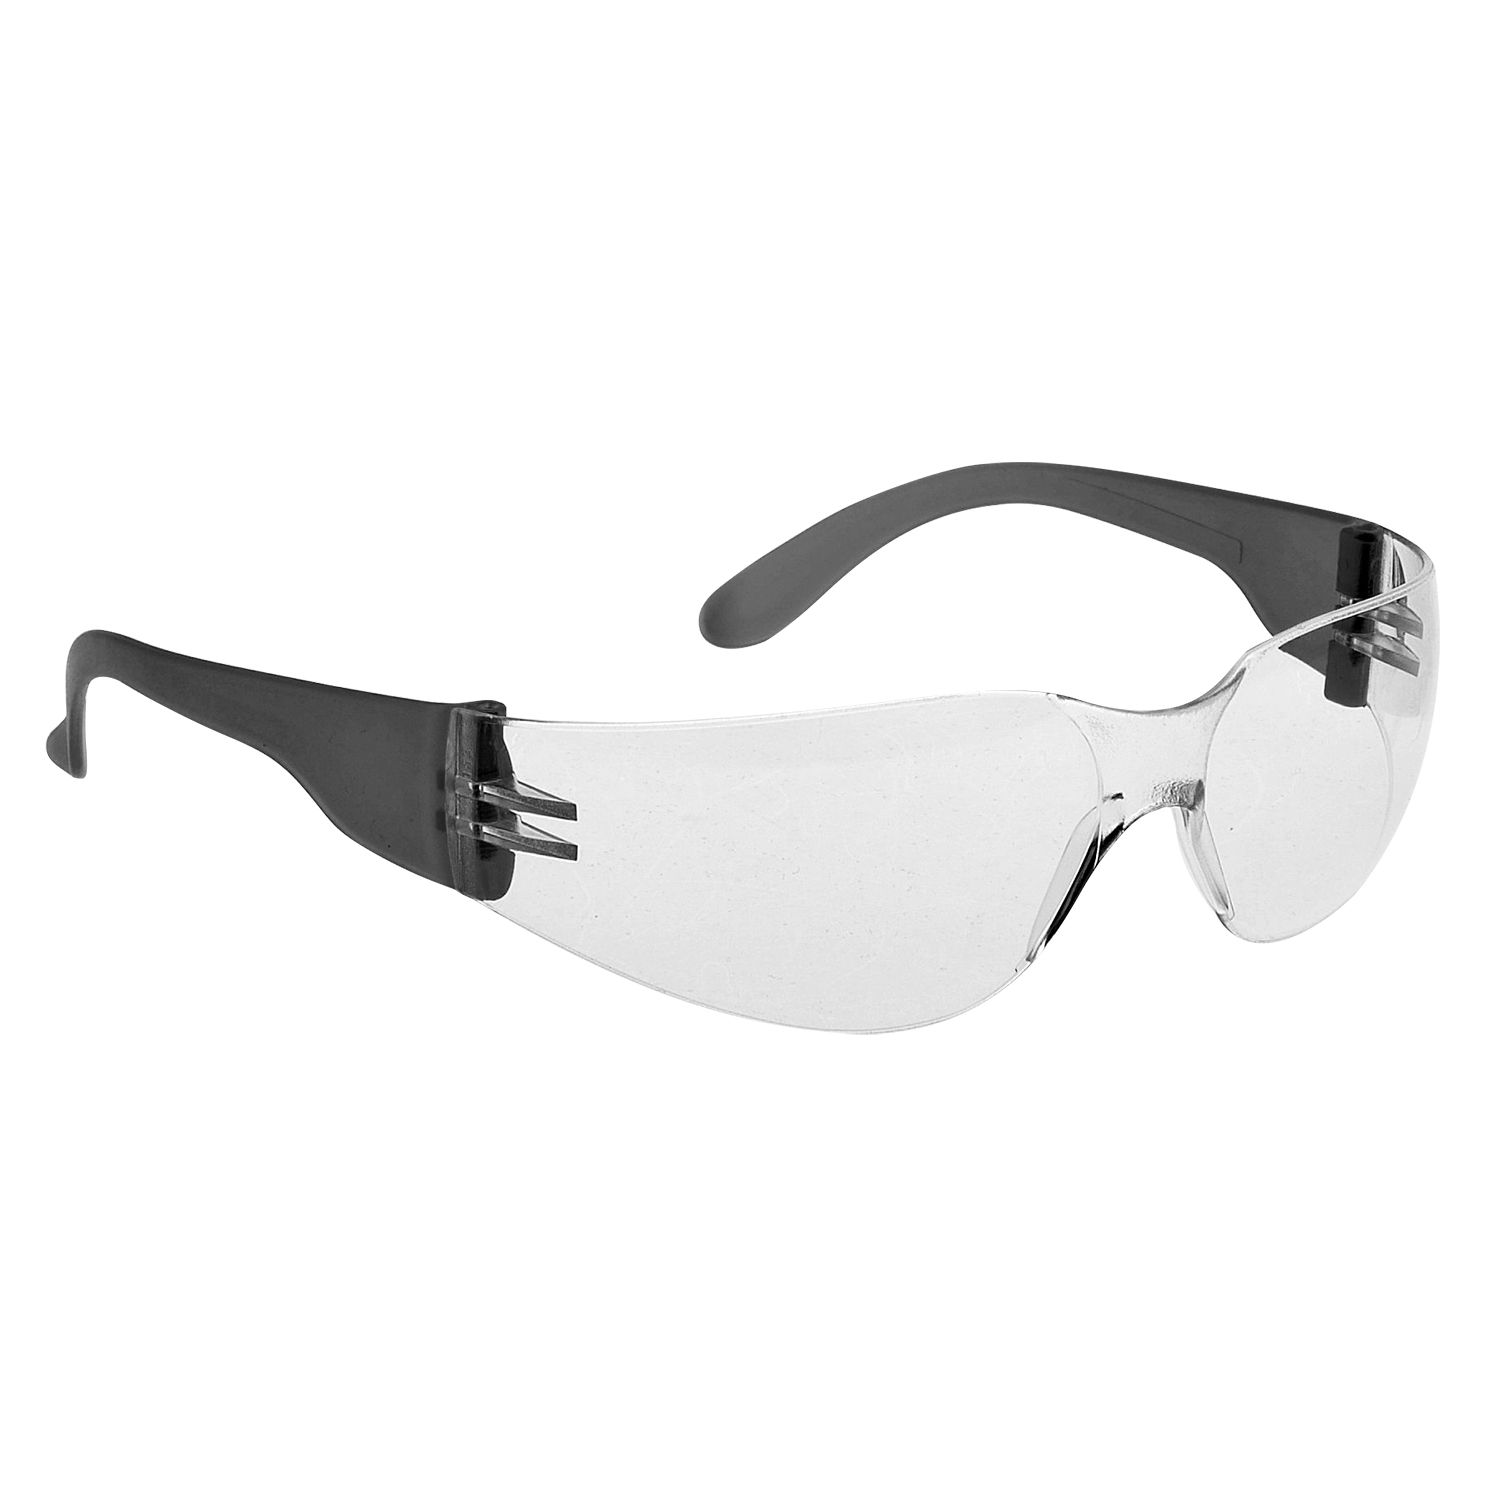 Portwest PW32 clear glasses